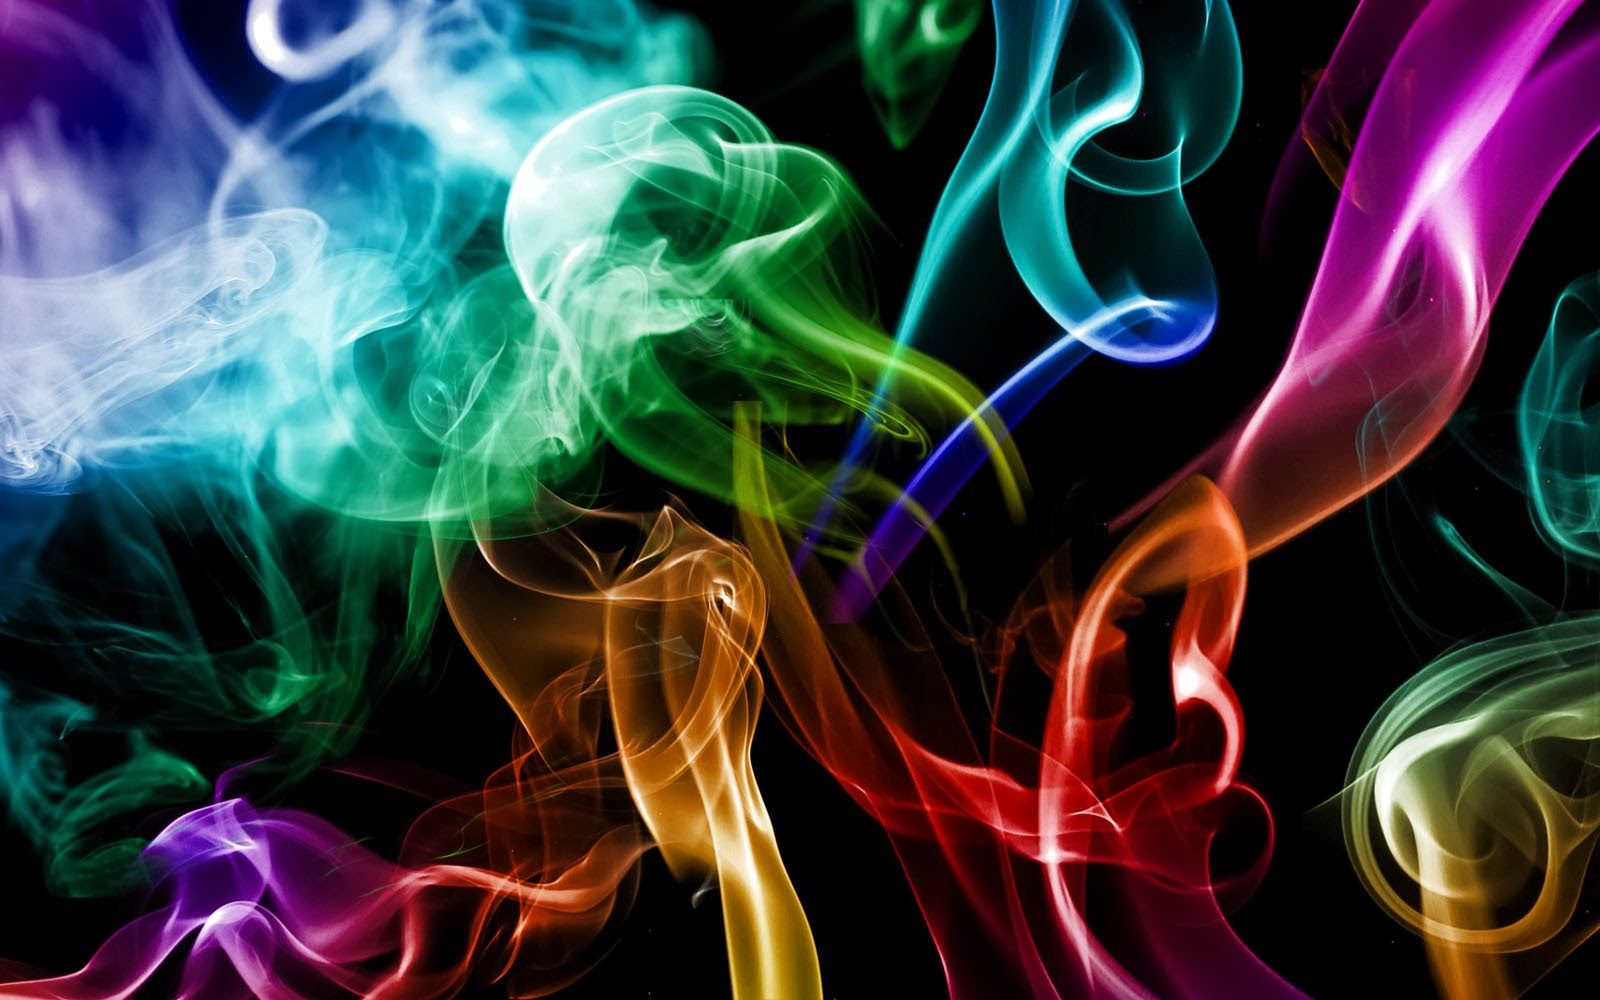 wallpapers: Colorful Smoke Wallpapers